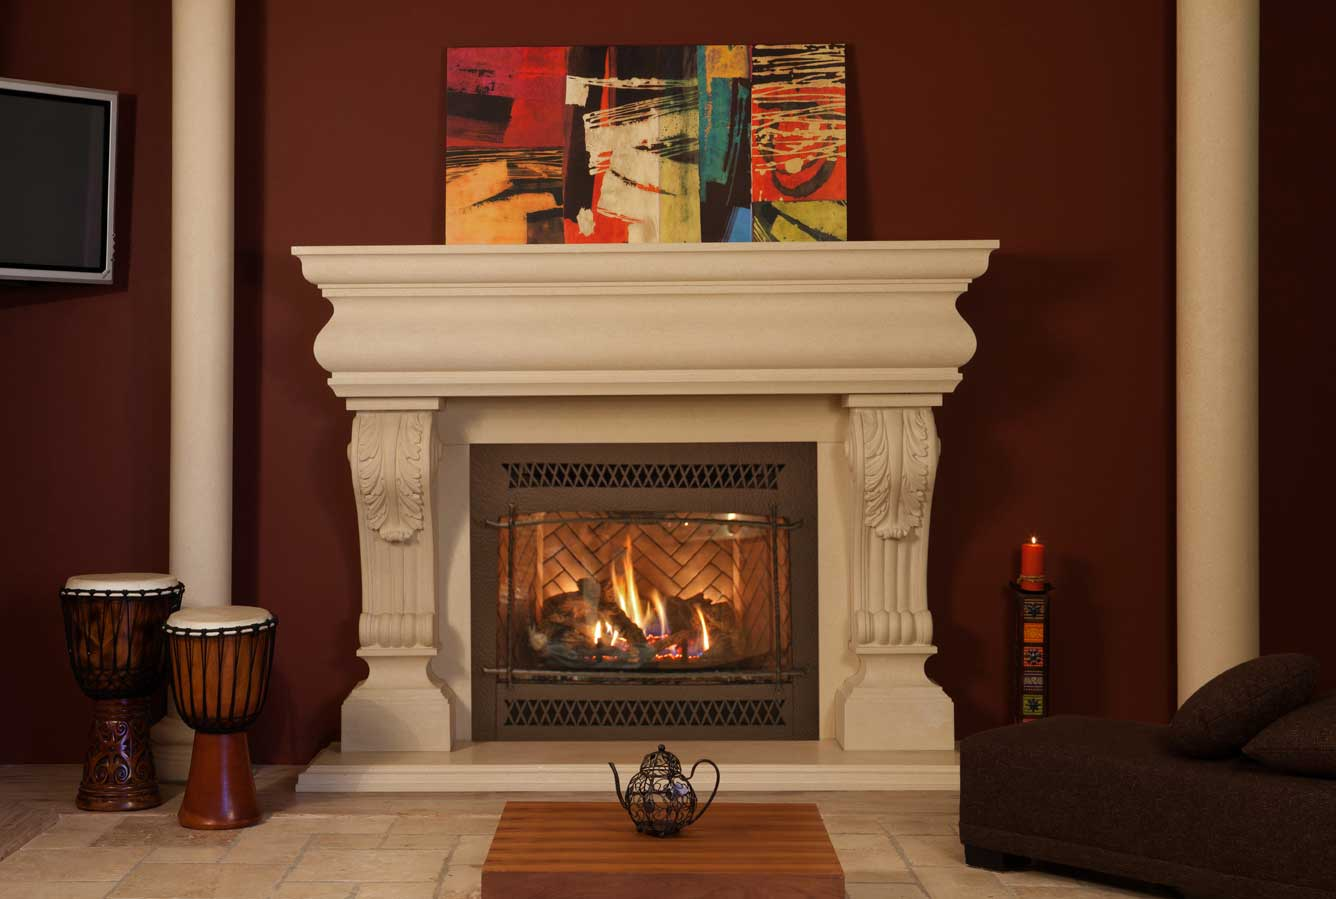 hercules 212 socal fireplace mantels. Black Bedroom Furniture Sets. Home Design Ideas